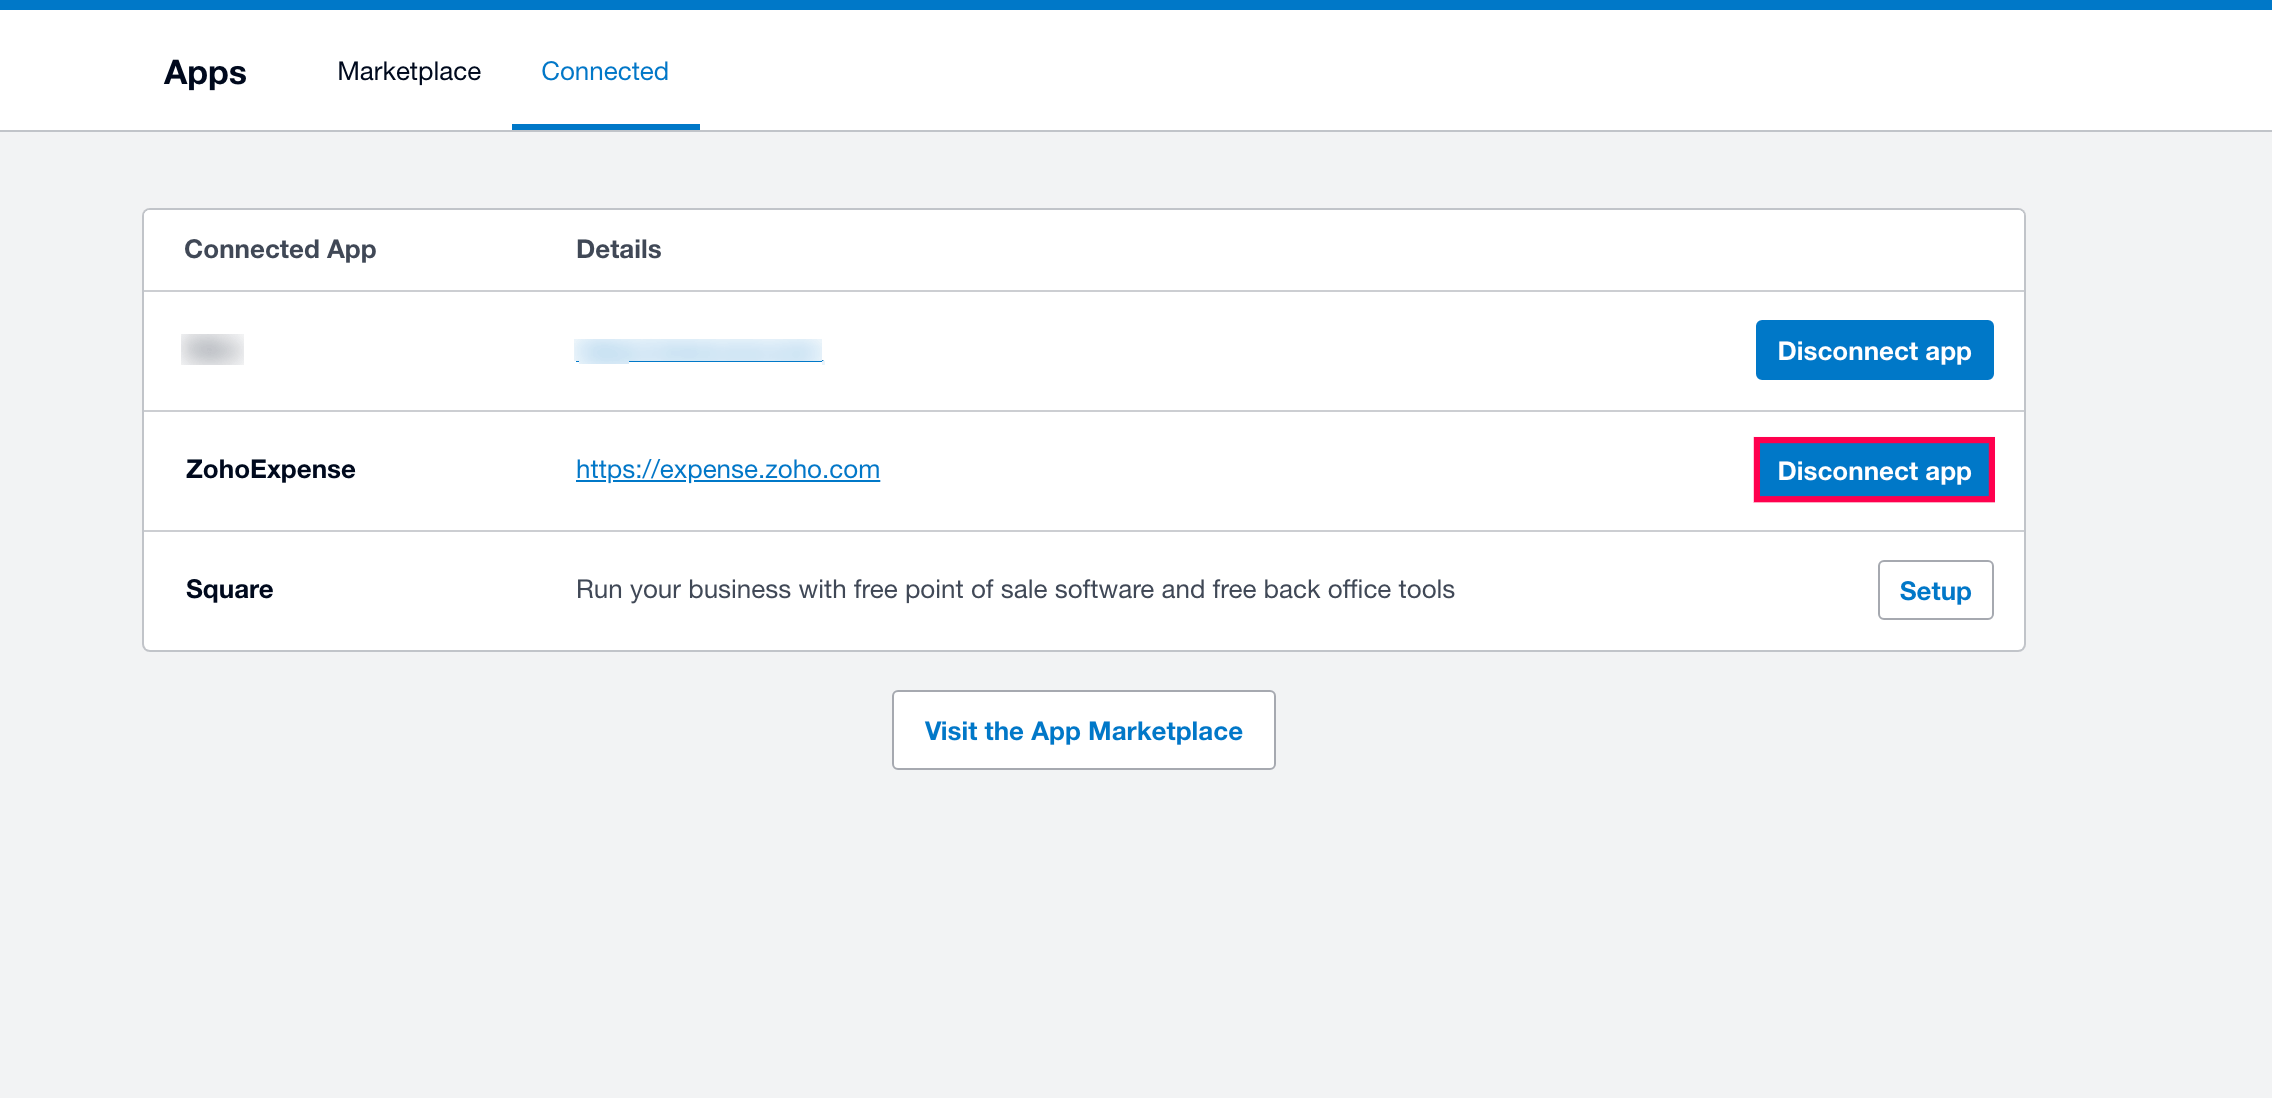 Disconnect Integration